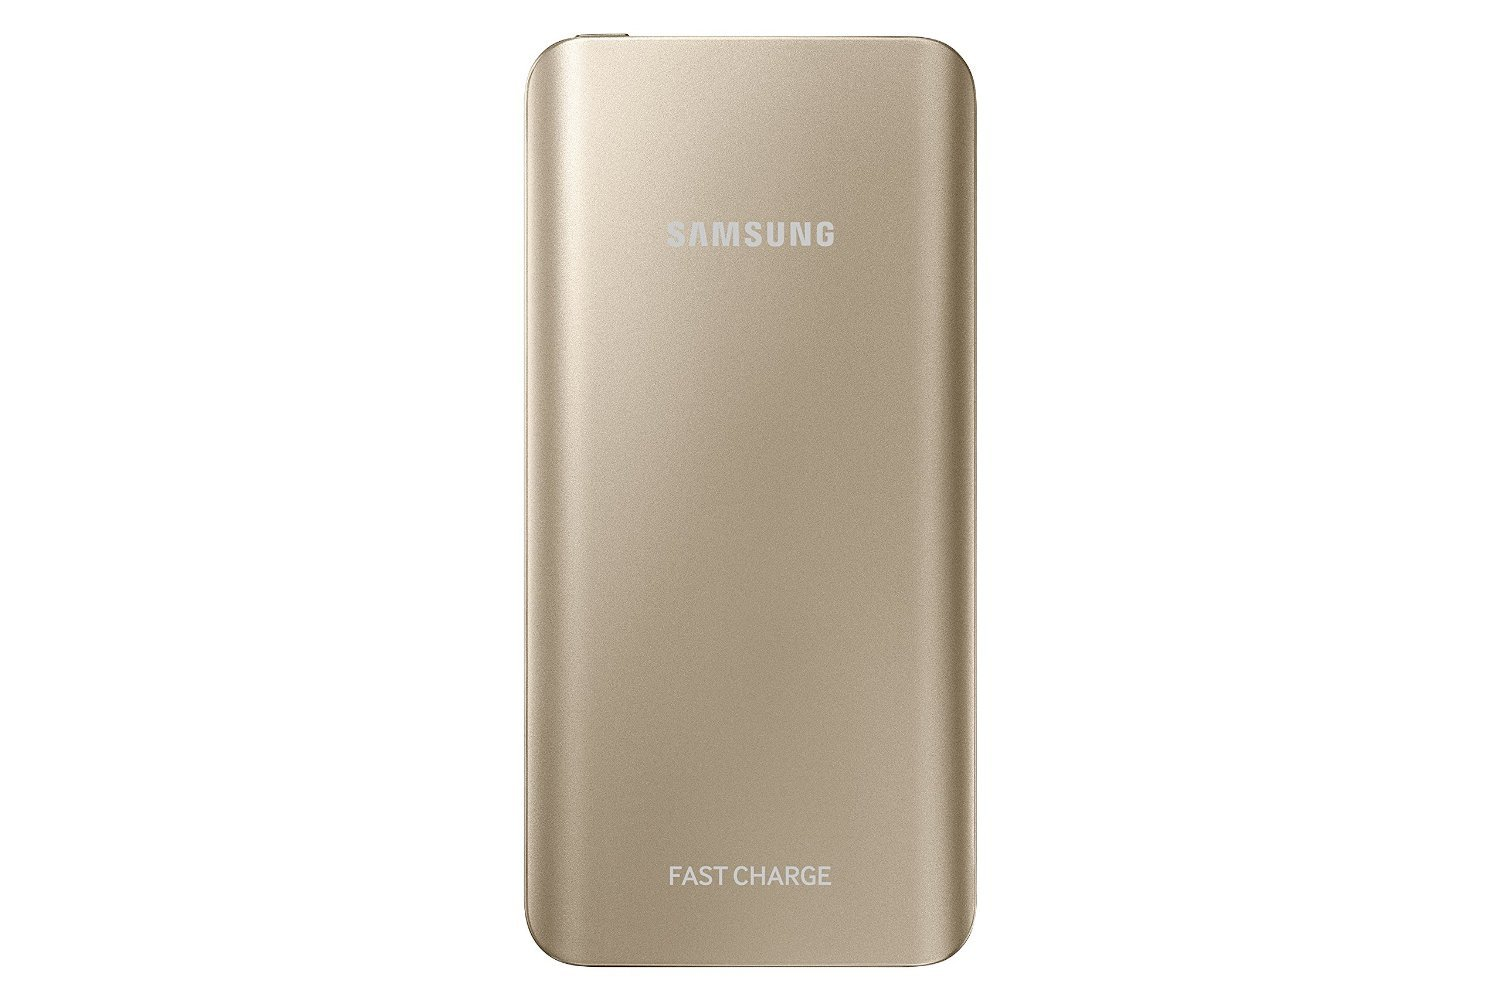 Samsung 5200mAh Fast Charge External Battery / Power Pack - Gold (Certified Refurbished)